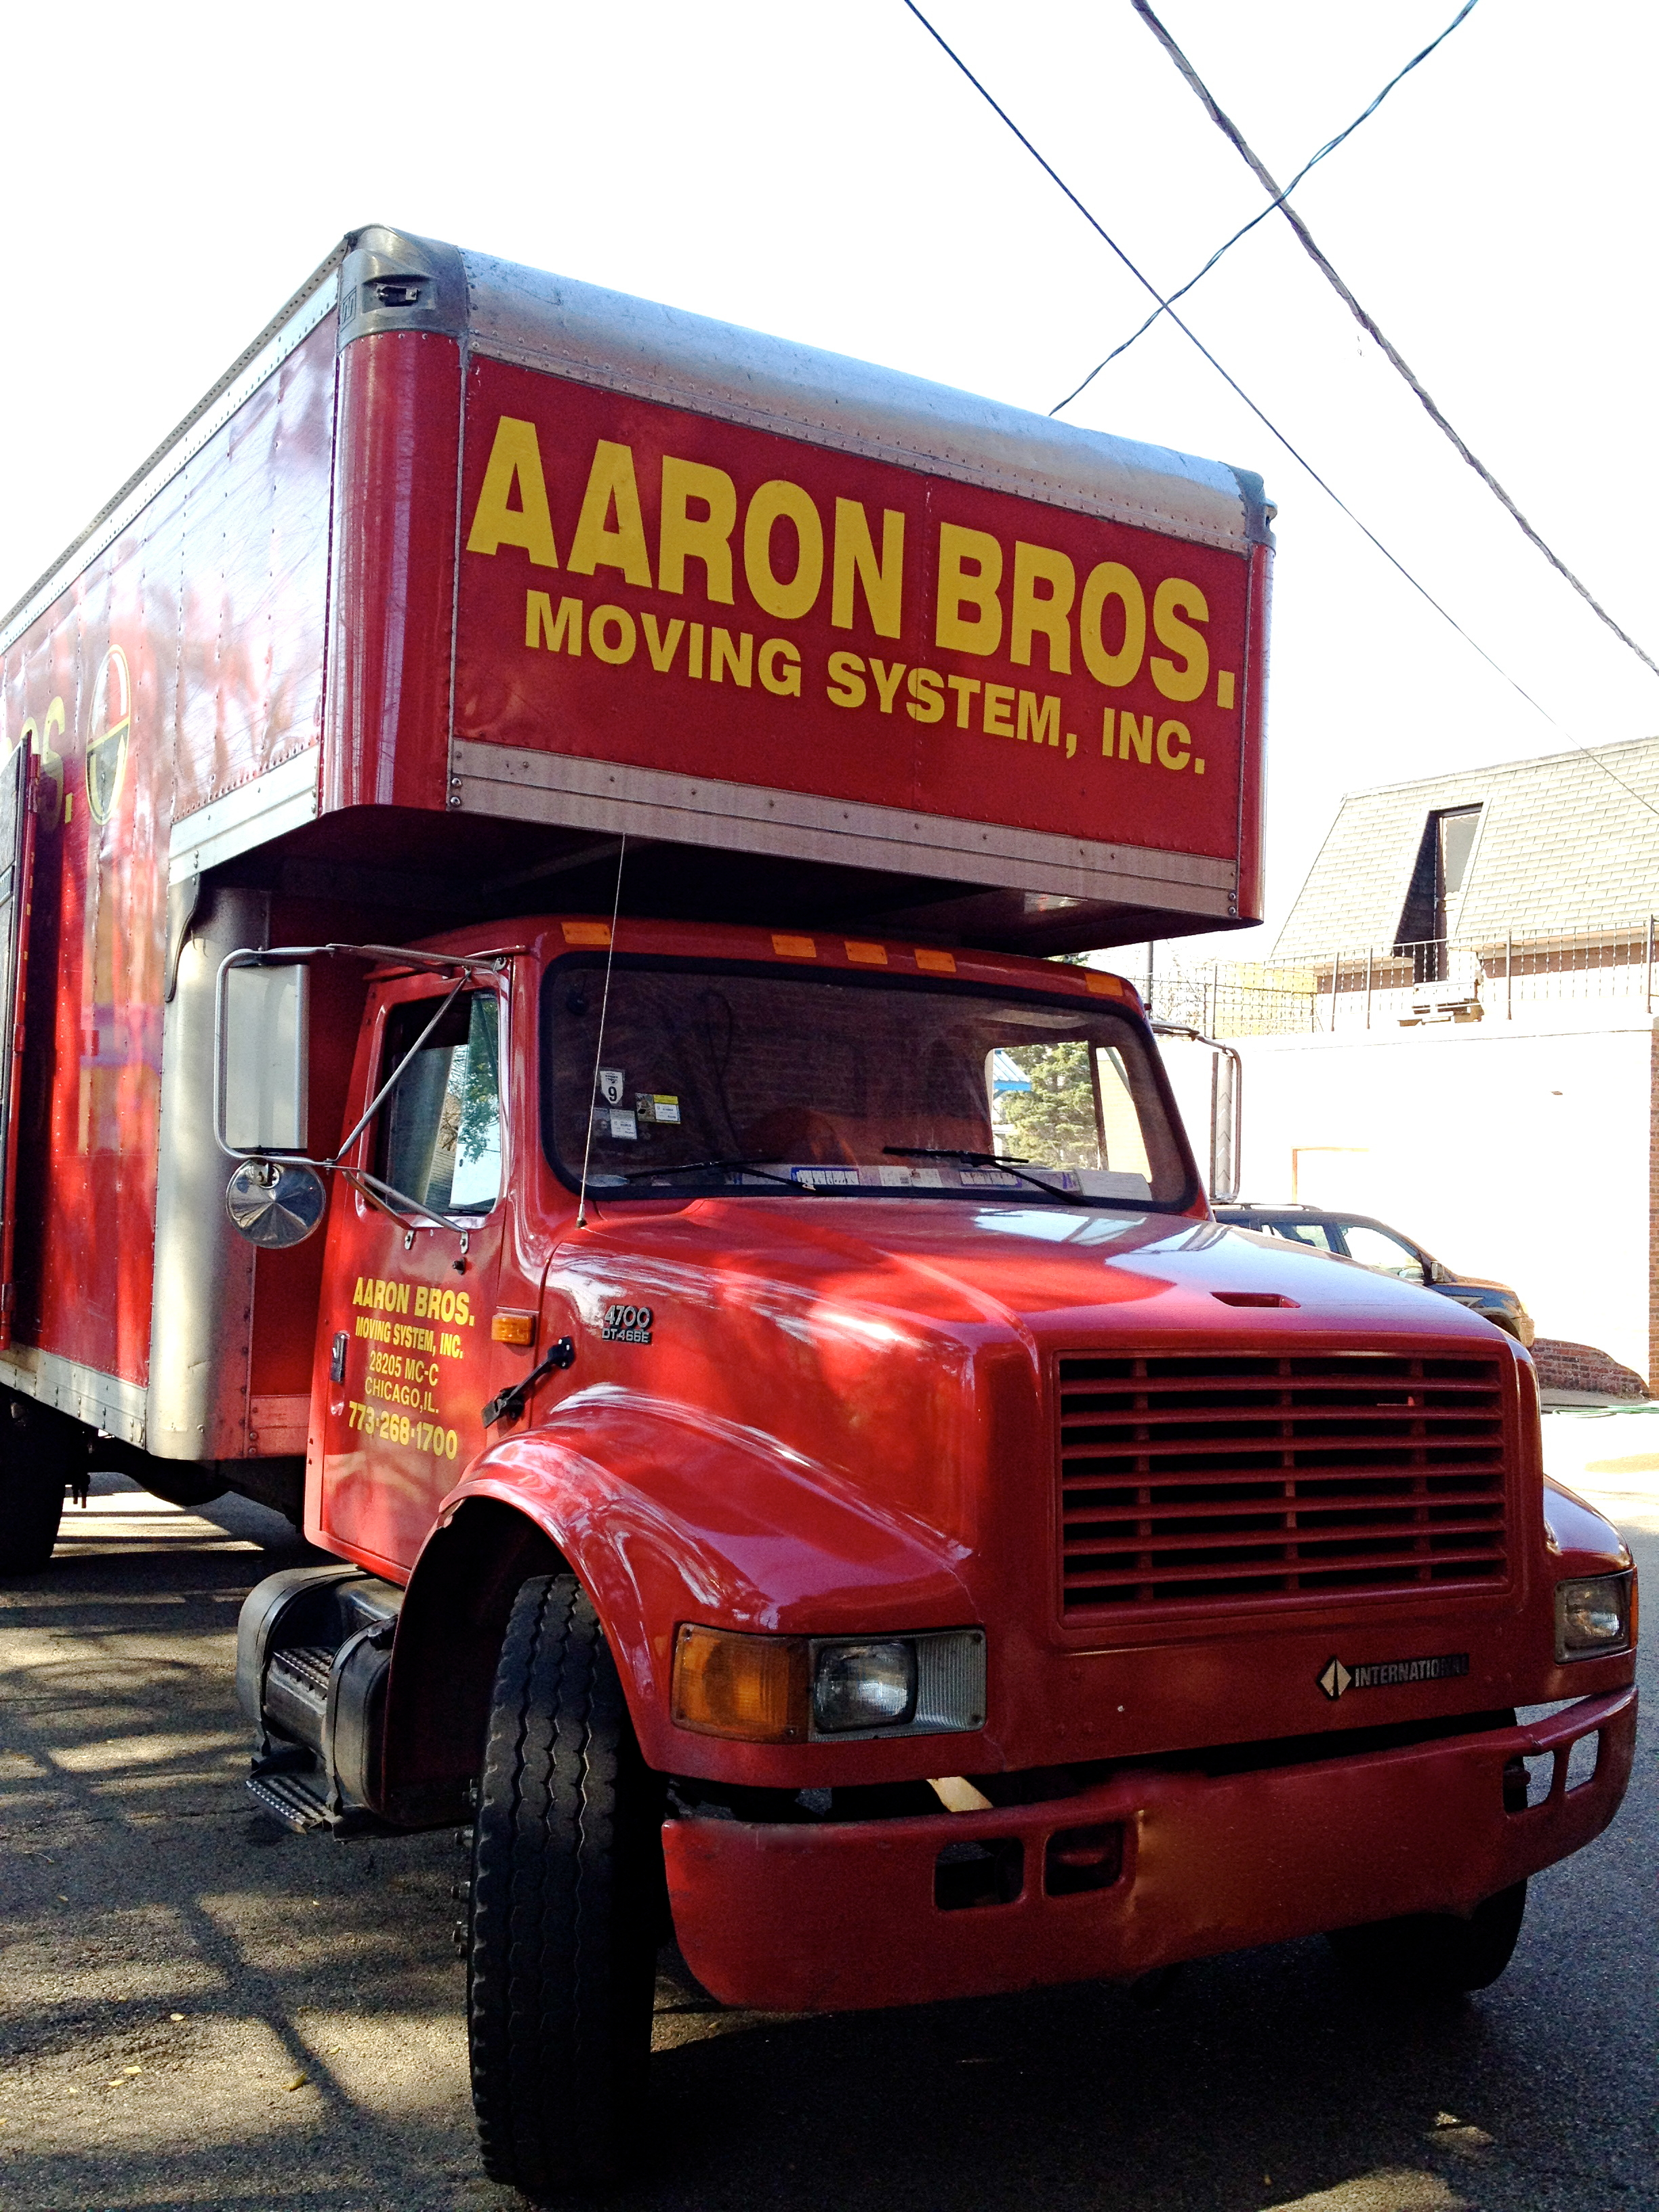 Aaron Bros Moving System Inc in Chicago IL 773 268 1